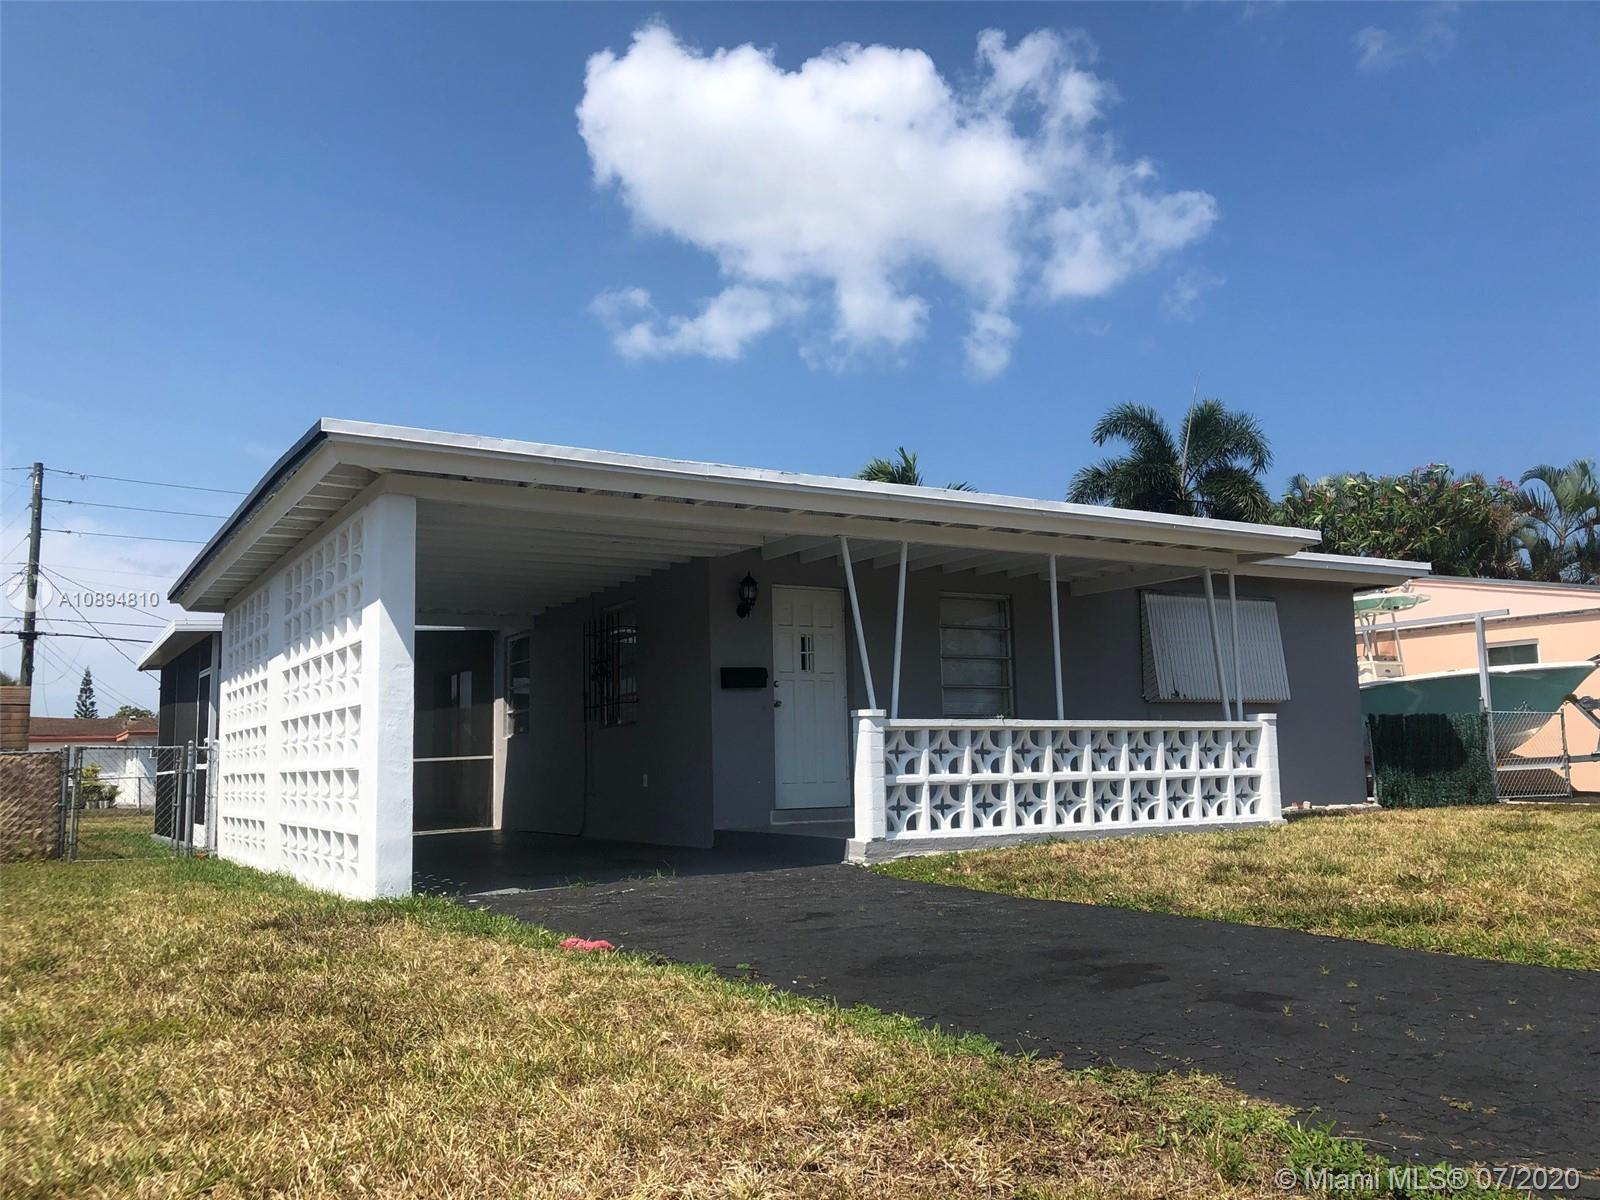 Great opportunity! Remodeled cozy home 2 bed, 2 bath, Carport, Screened Patio, New Central A/C, larg